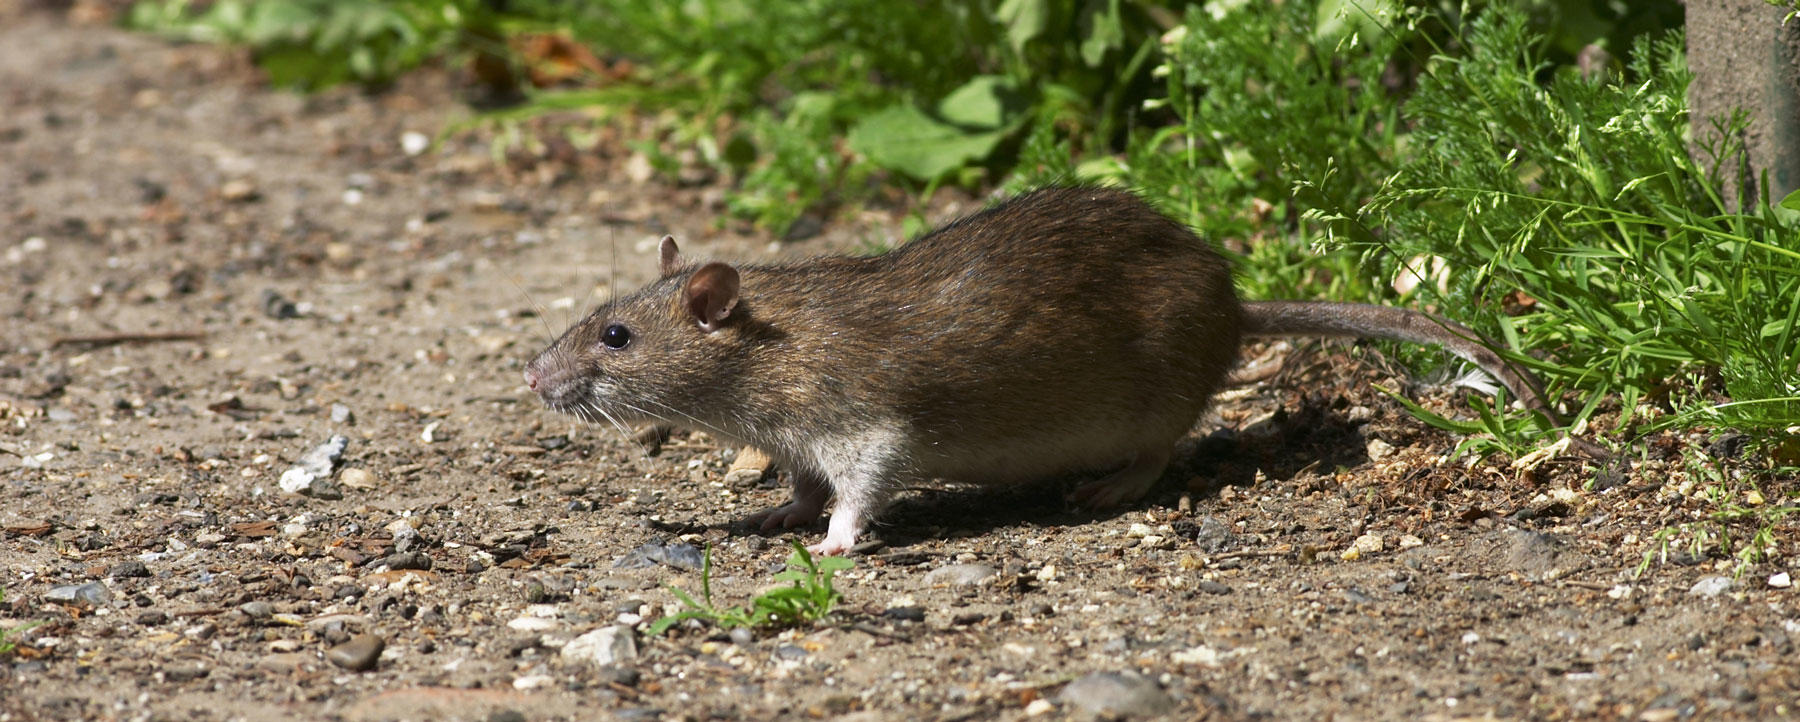 Scurrying rodent